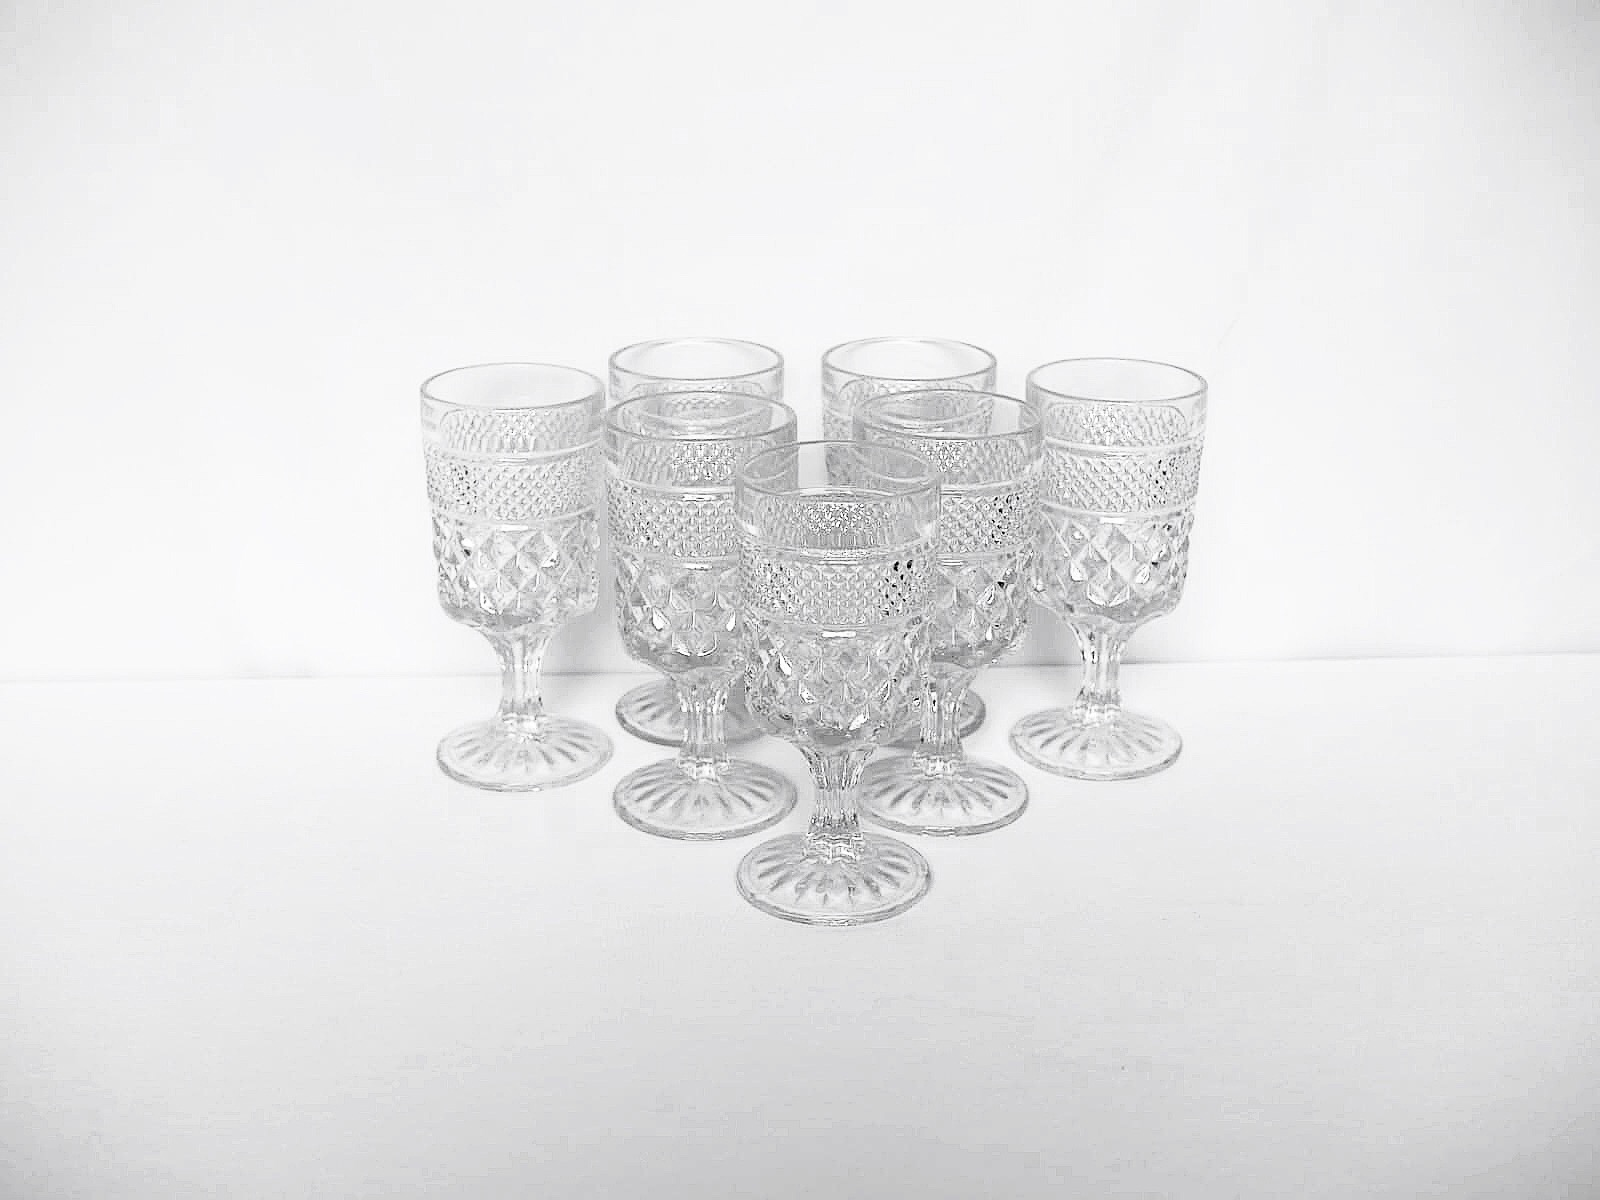 pressed glass gobletsRENTAL PRICE PER: $4.00 - 32 available in total*